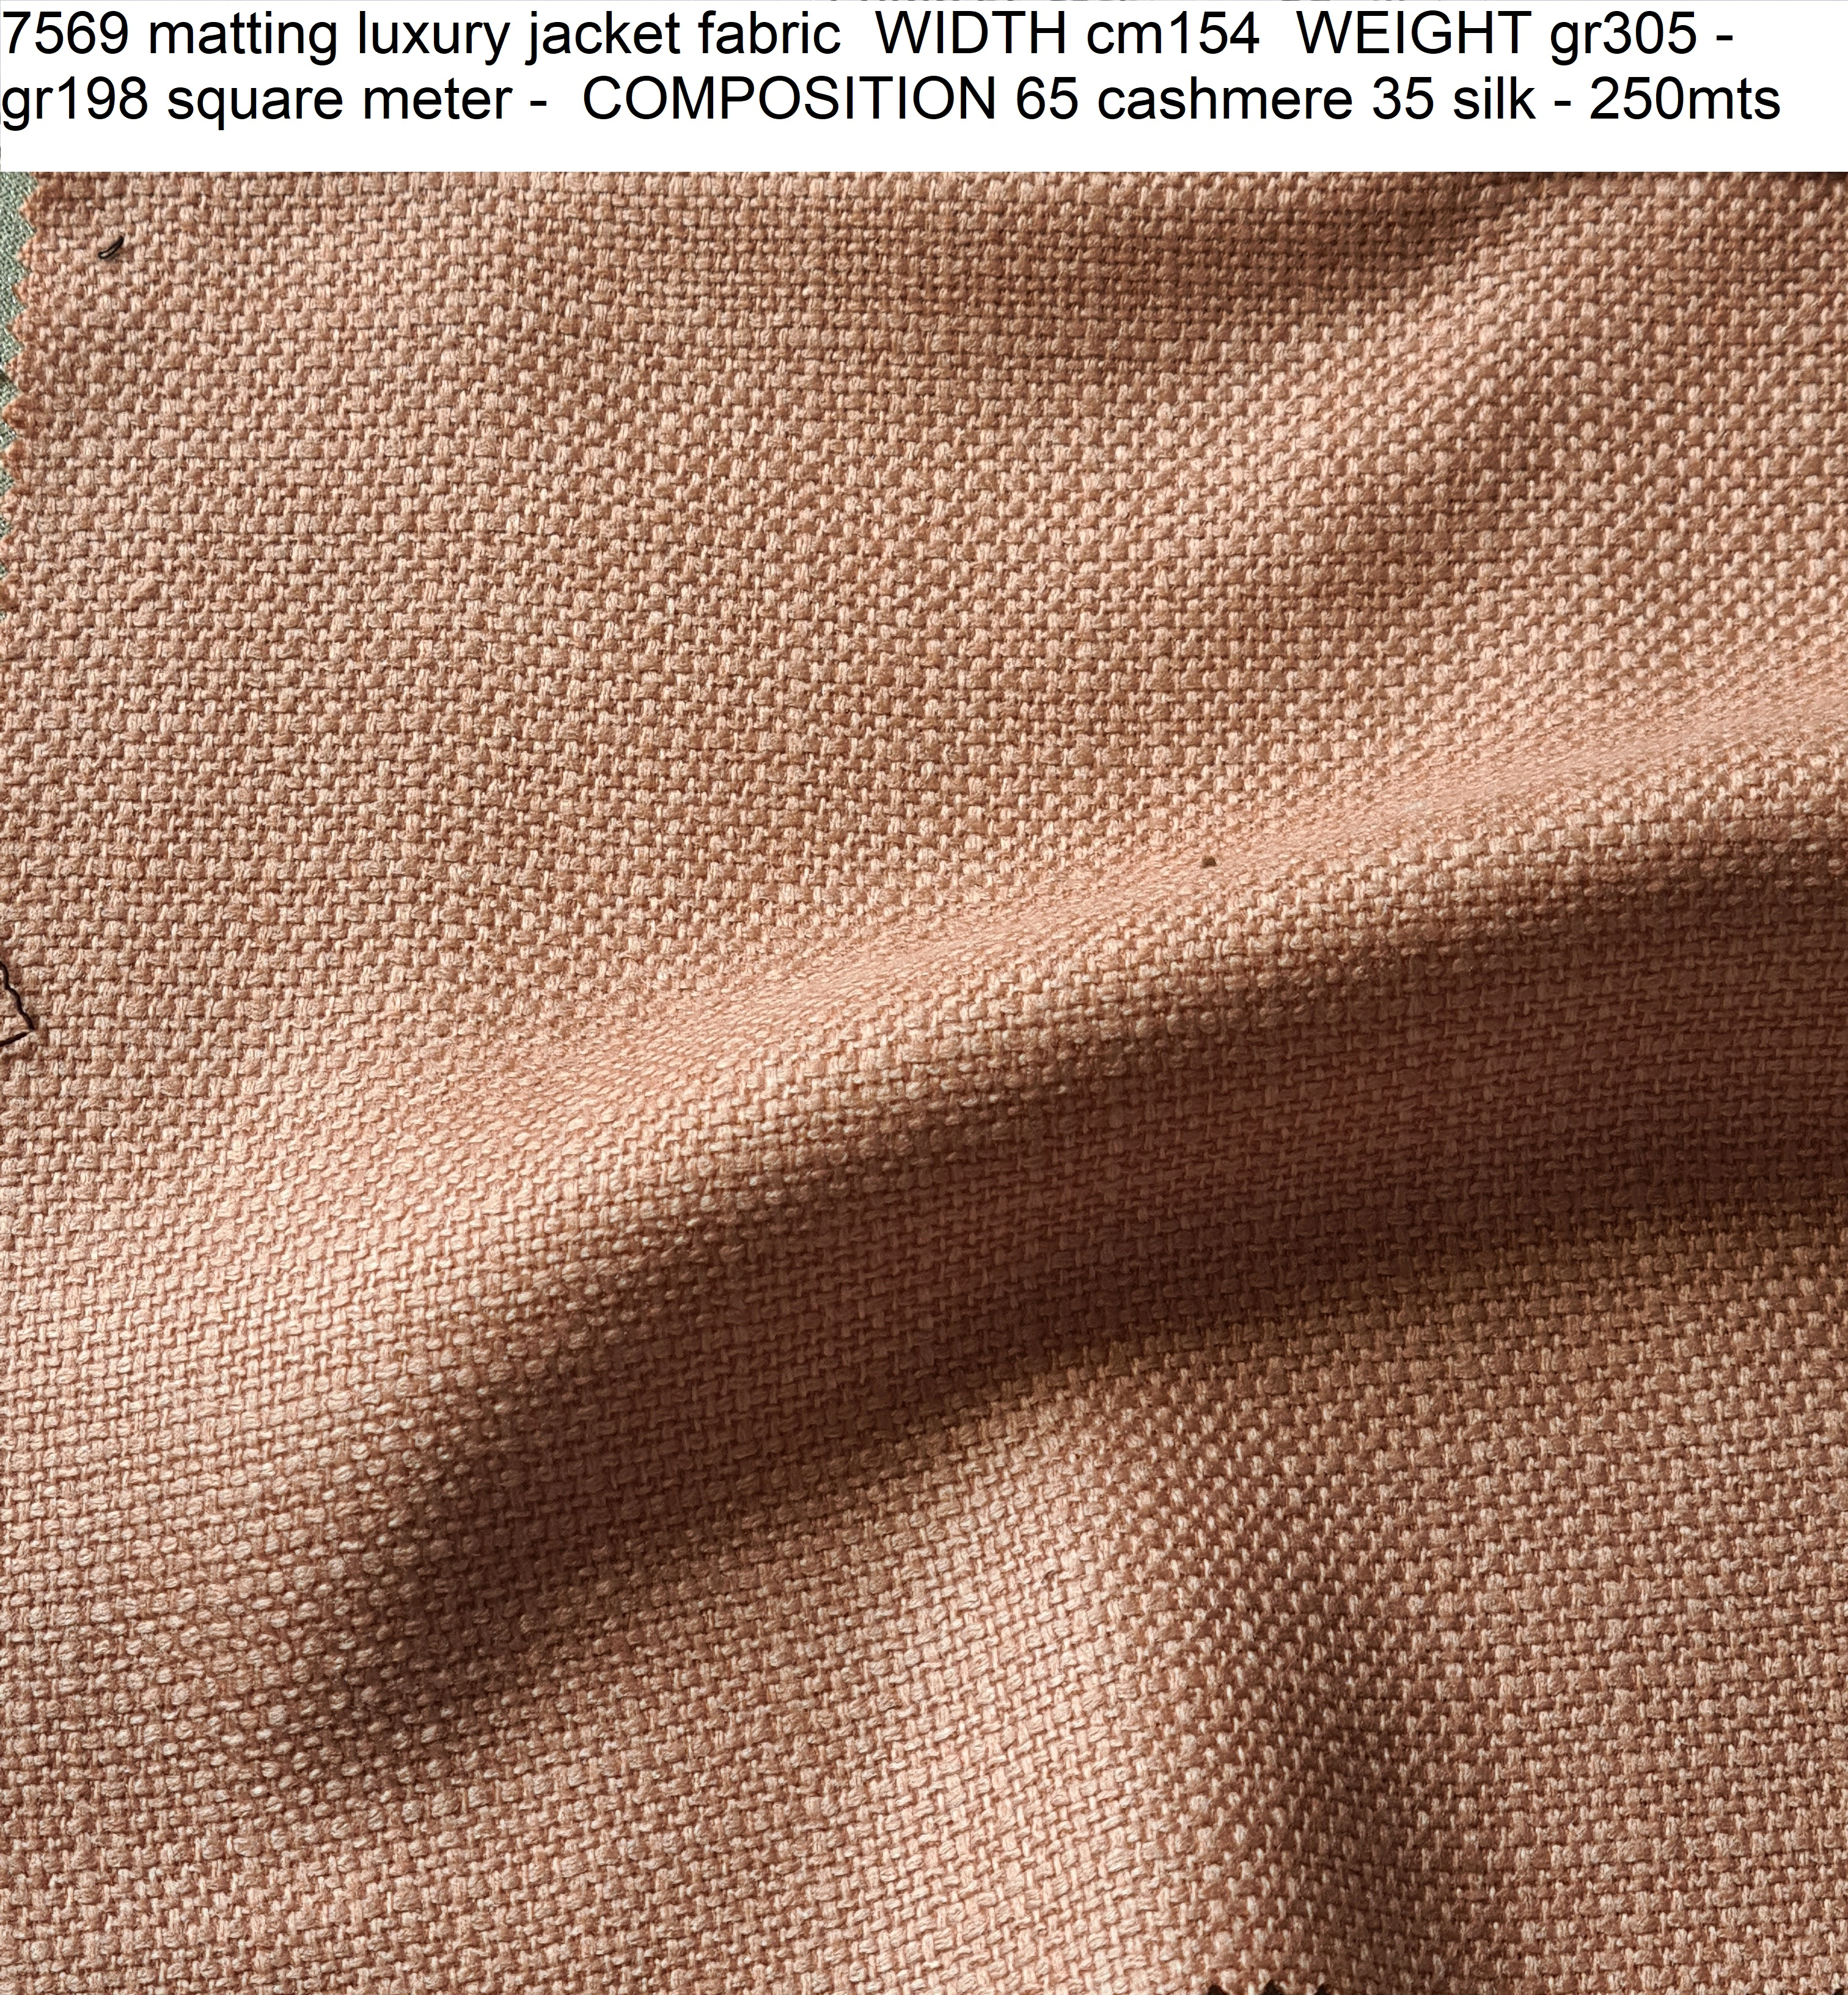 7569 matting luxury jacket fabric WIDTH cm154 WEIGHT gr305 - gr198 square meter - COMPOSITION 65 cashmere 35 silk - 250mts